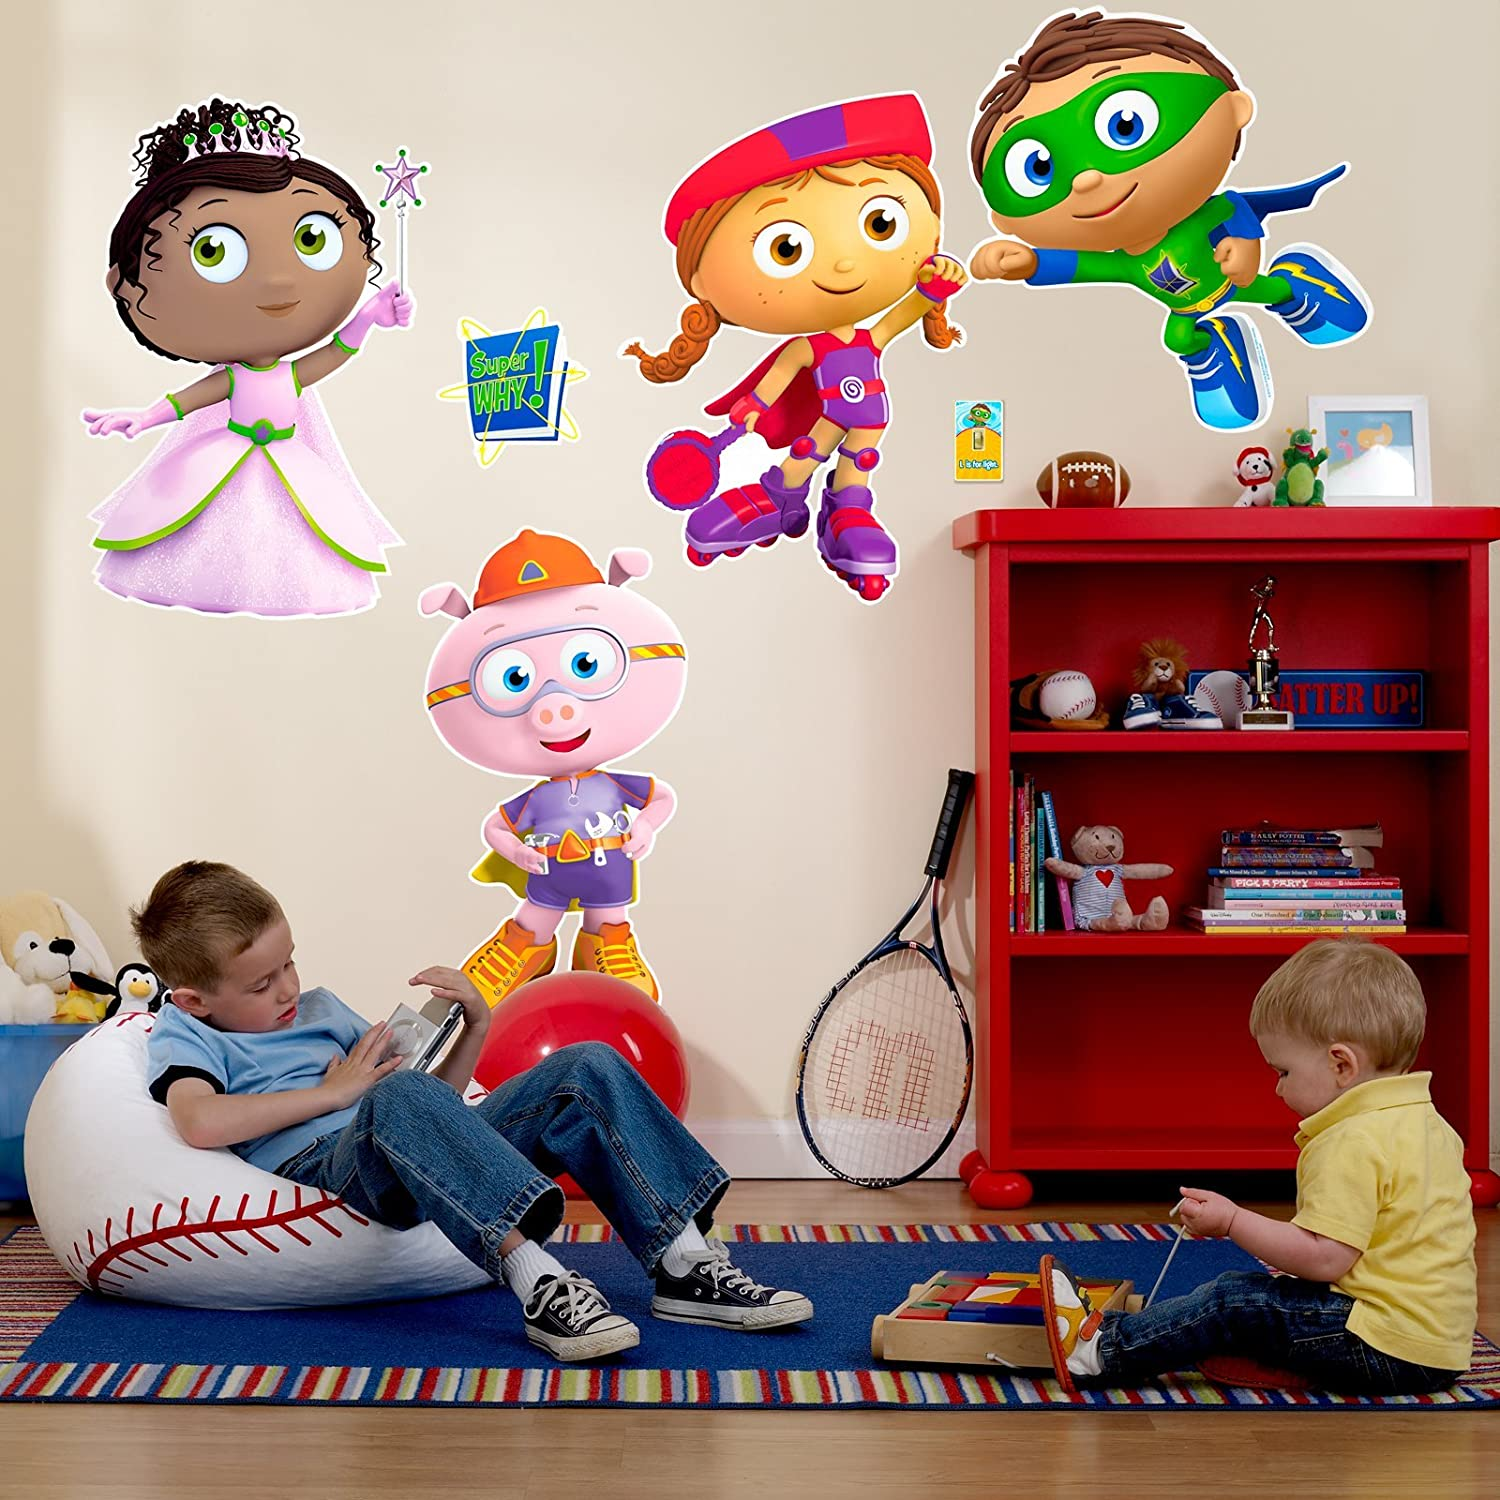 Amazoncom Super Why Room Decor Giant Wall Decals Toys Games - Spongebob room decals